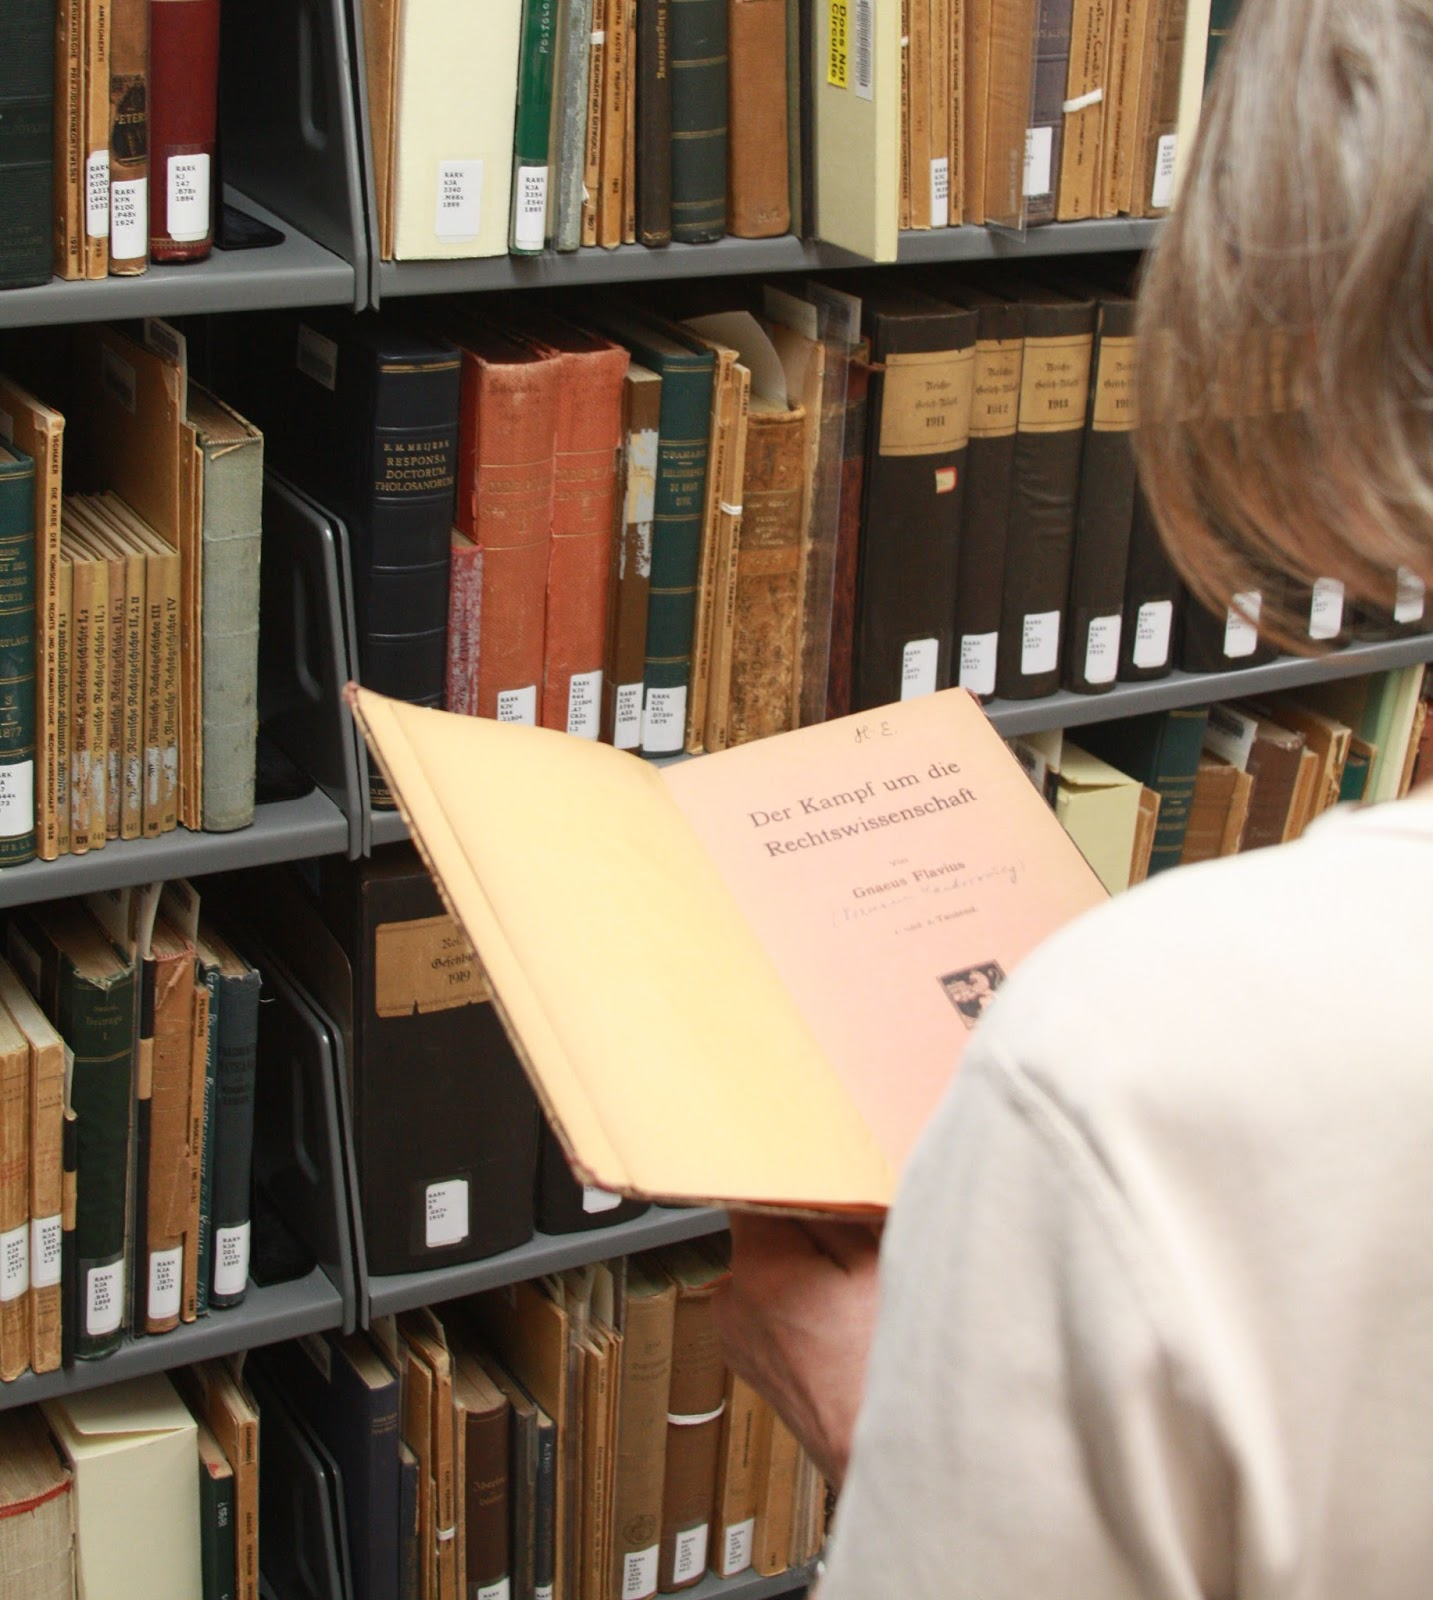 The Project To Assemble The Kantorowicz Library Was Carried Out By Our  Colleague And Collections Expert Extraordinaire, Ingrid Miza, And A Student  Worker,